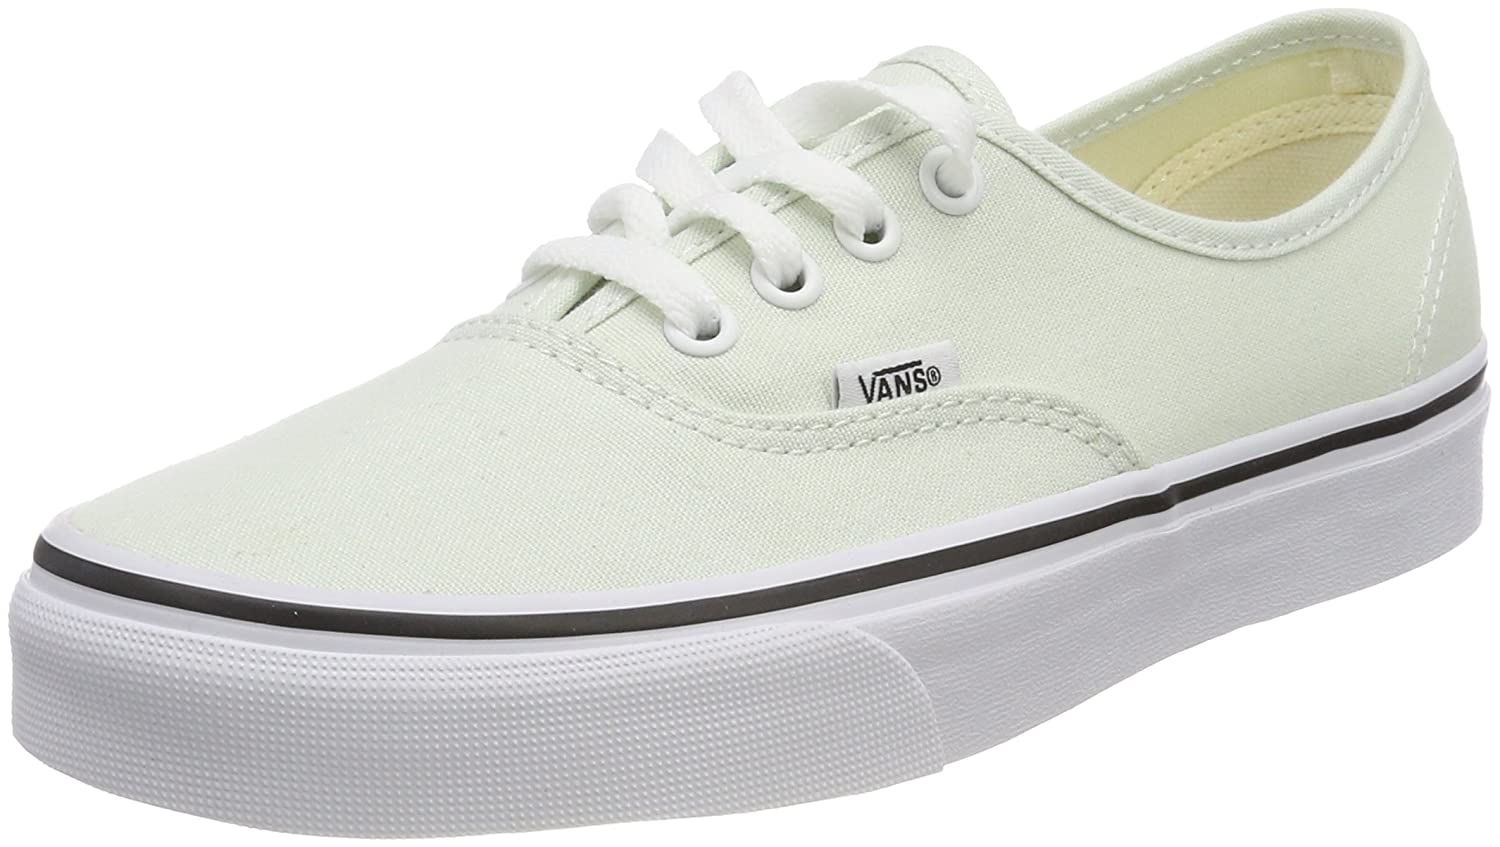 TALLA 36 EU. Vans U Authentic, Zapatillas Unisex Adulto